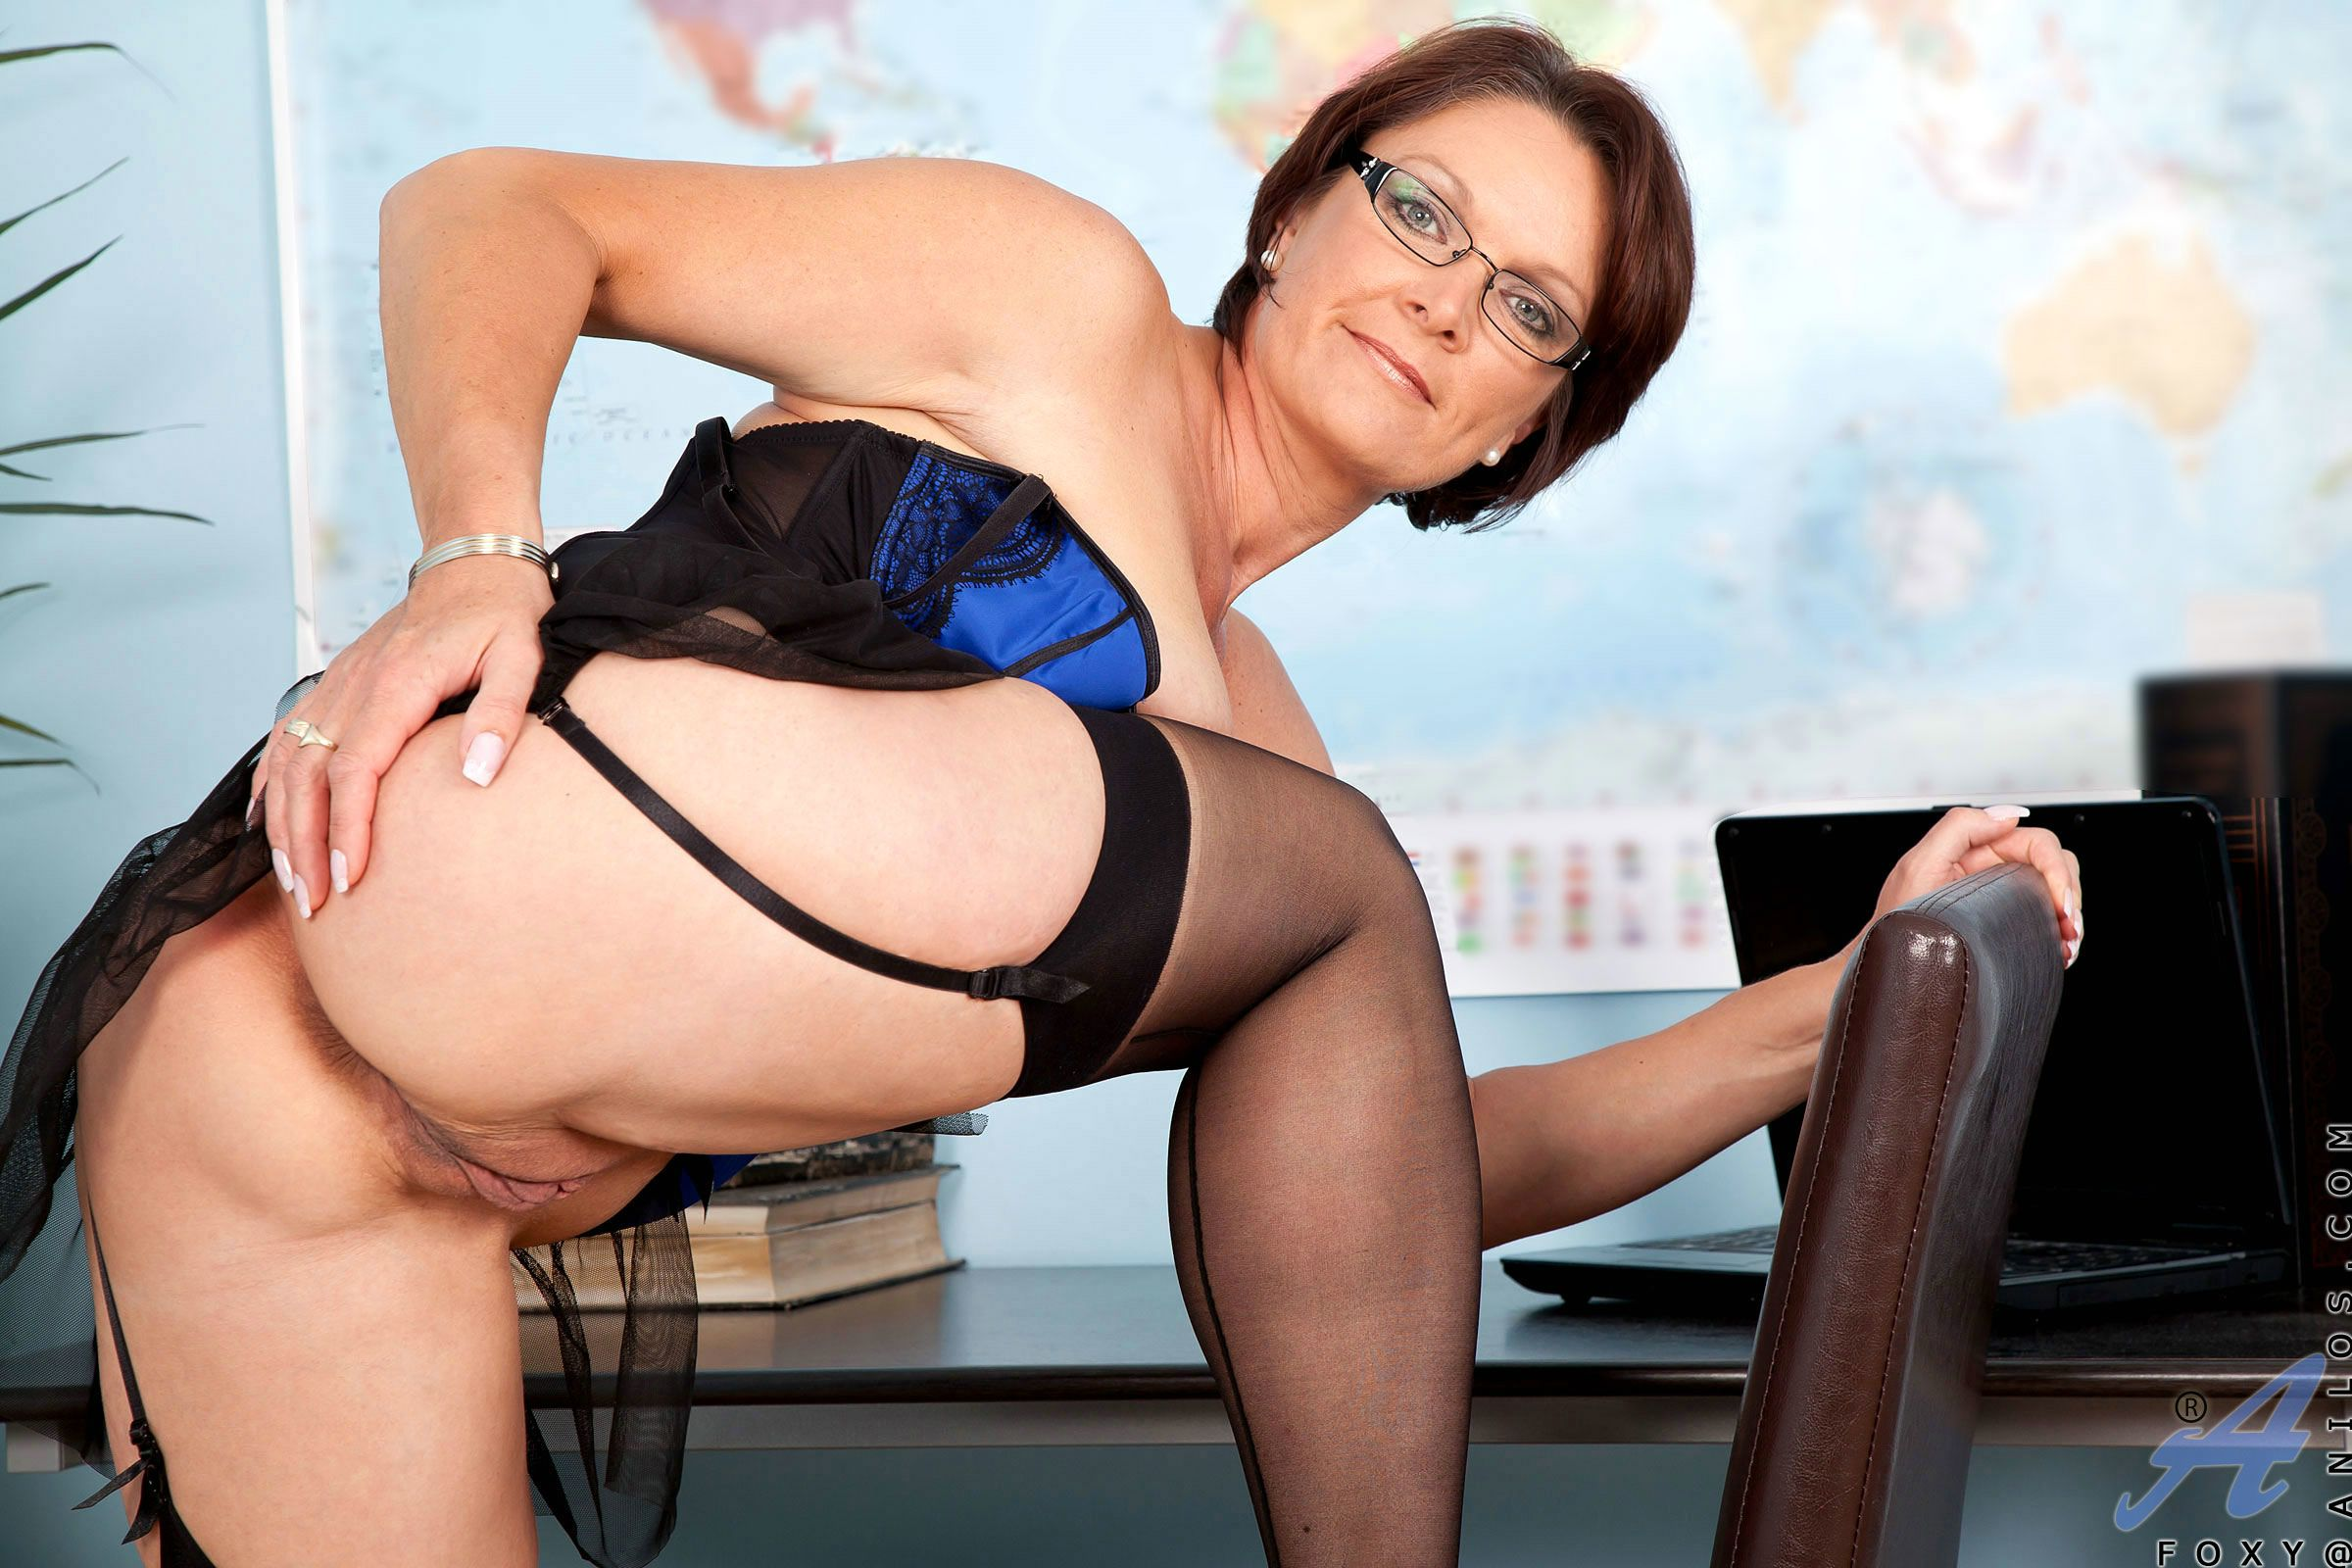 Mature lady Foxy in sexy lingerie, stockings and high heels loves teasing